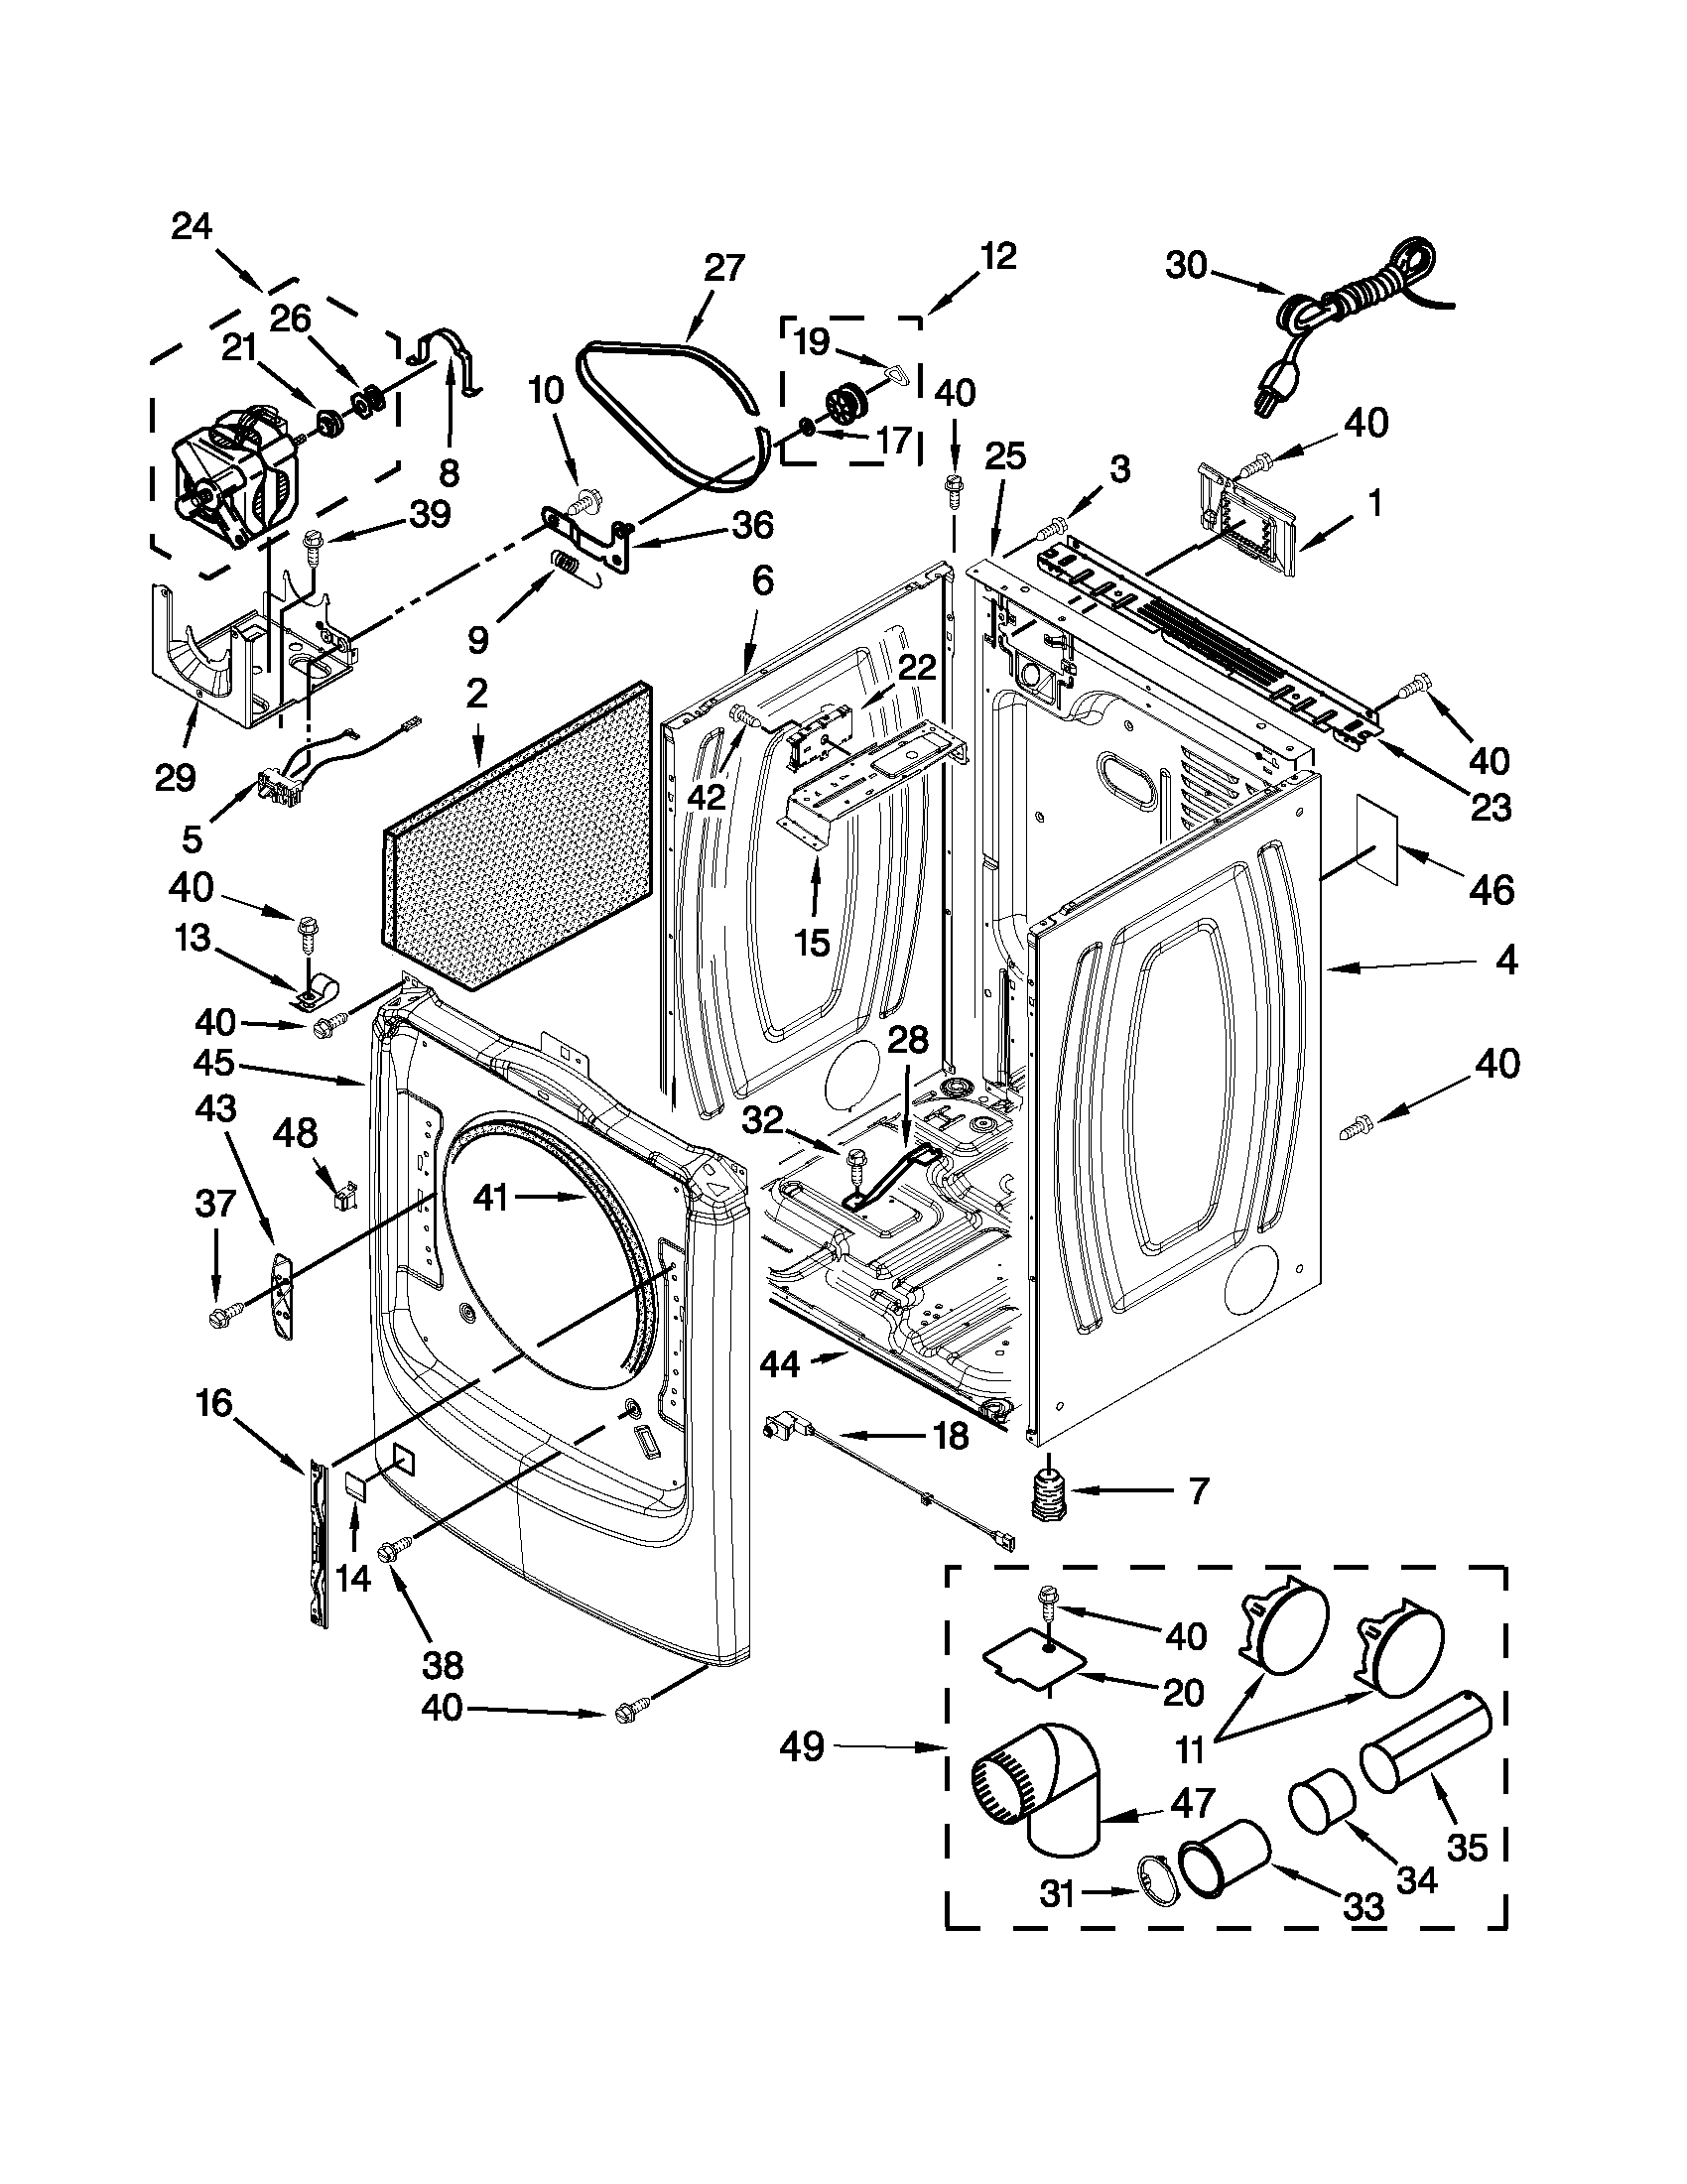 Maytag MGD4200BW0 cabinet parts diagram